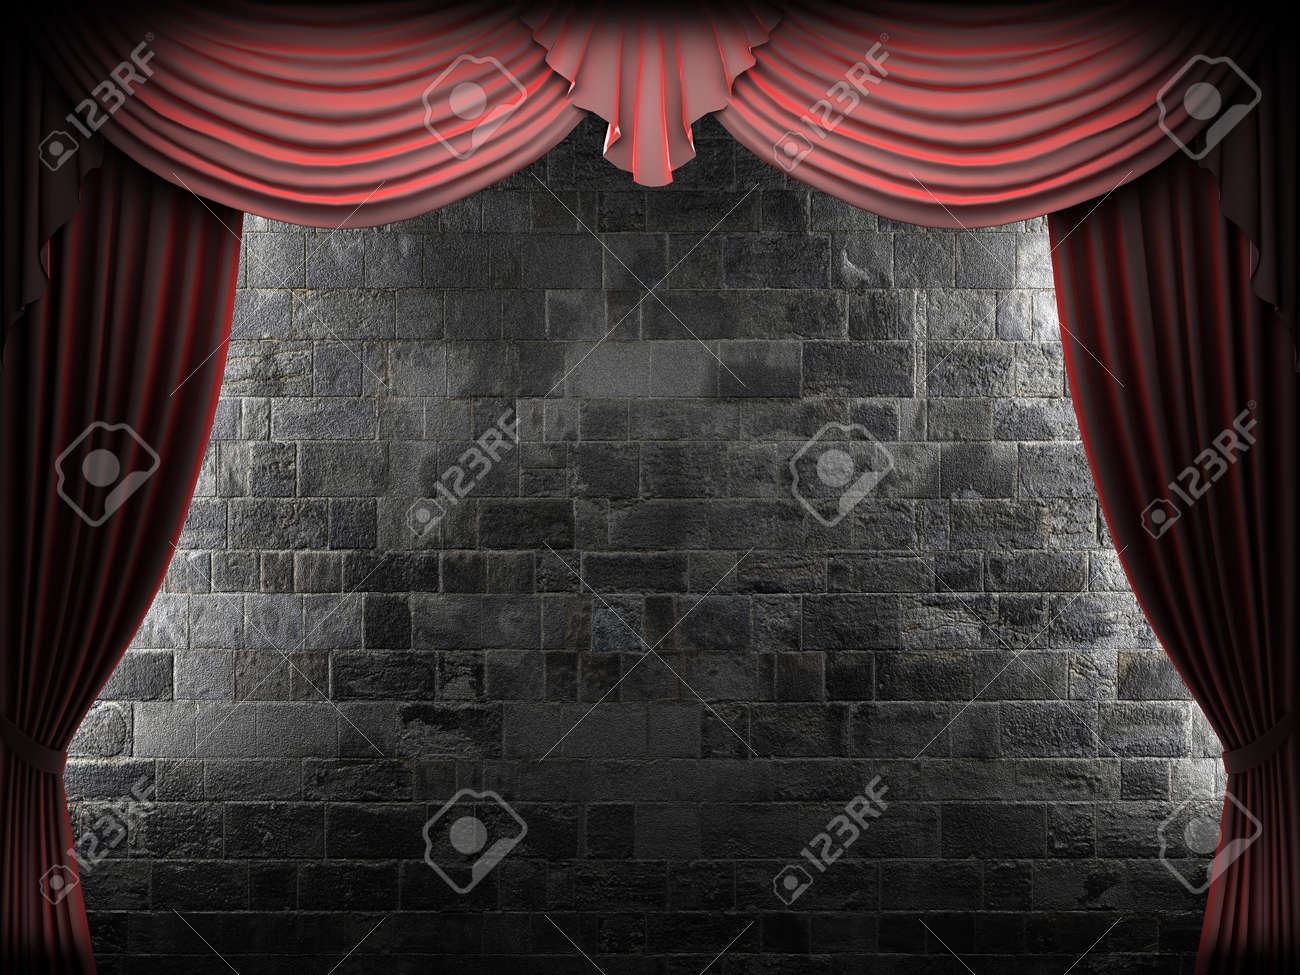 Red velvet curtain and stone wall made in 3d Stock Photo - 8508951